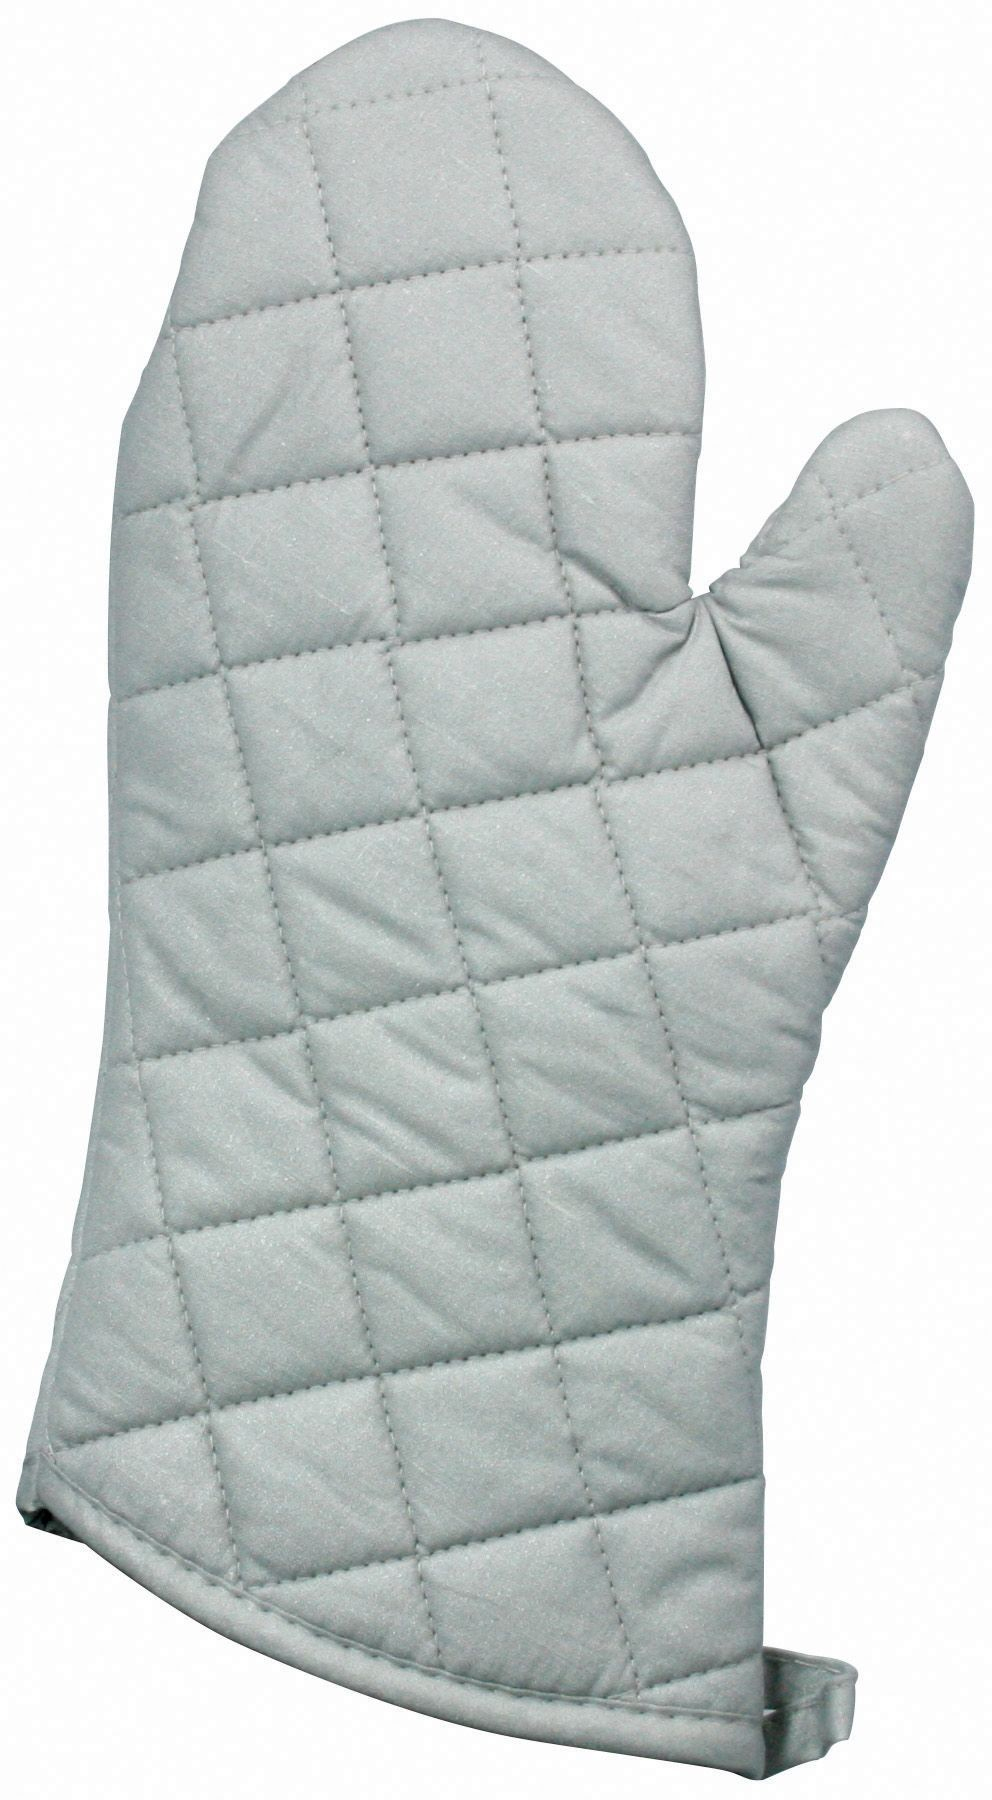 Silicone Oven Mitt - 13 (Protects up to 200F)